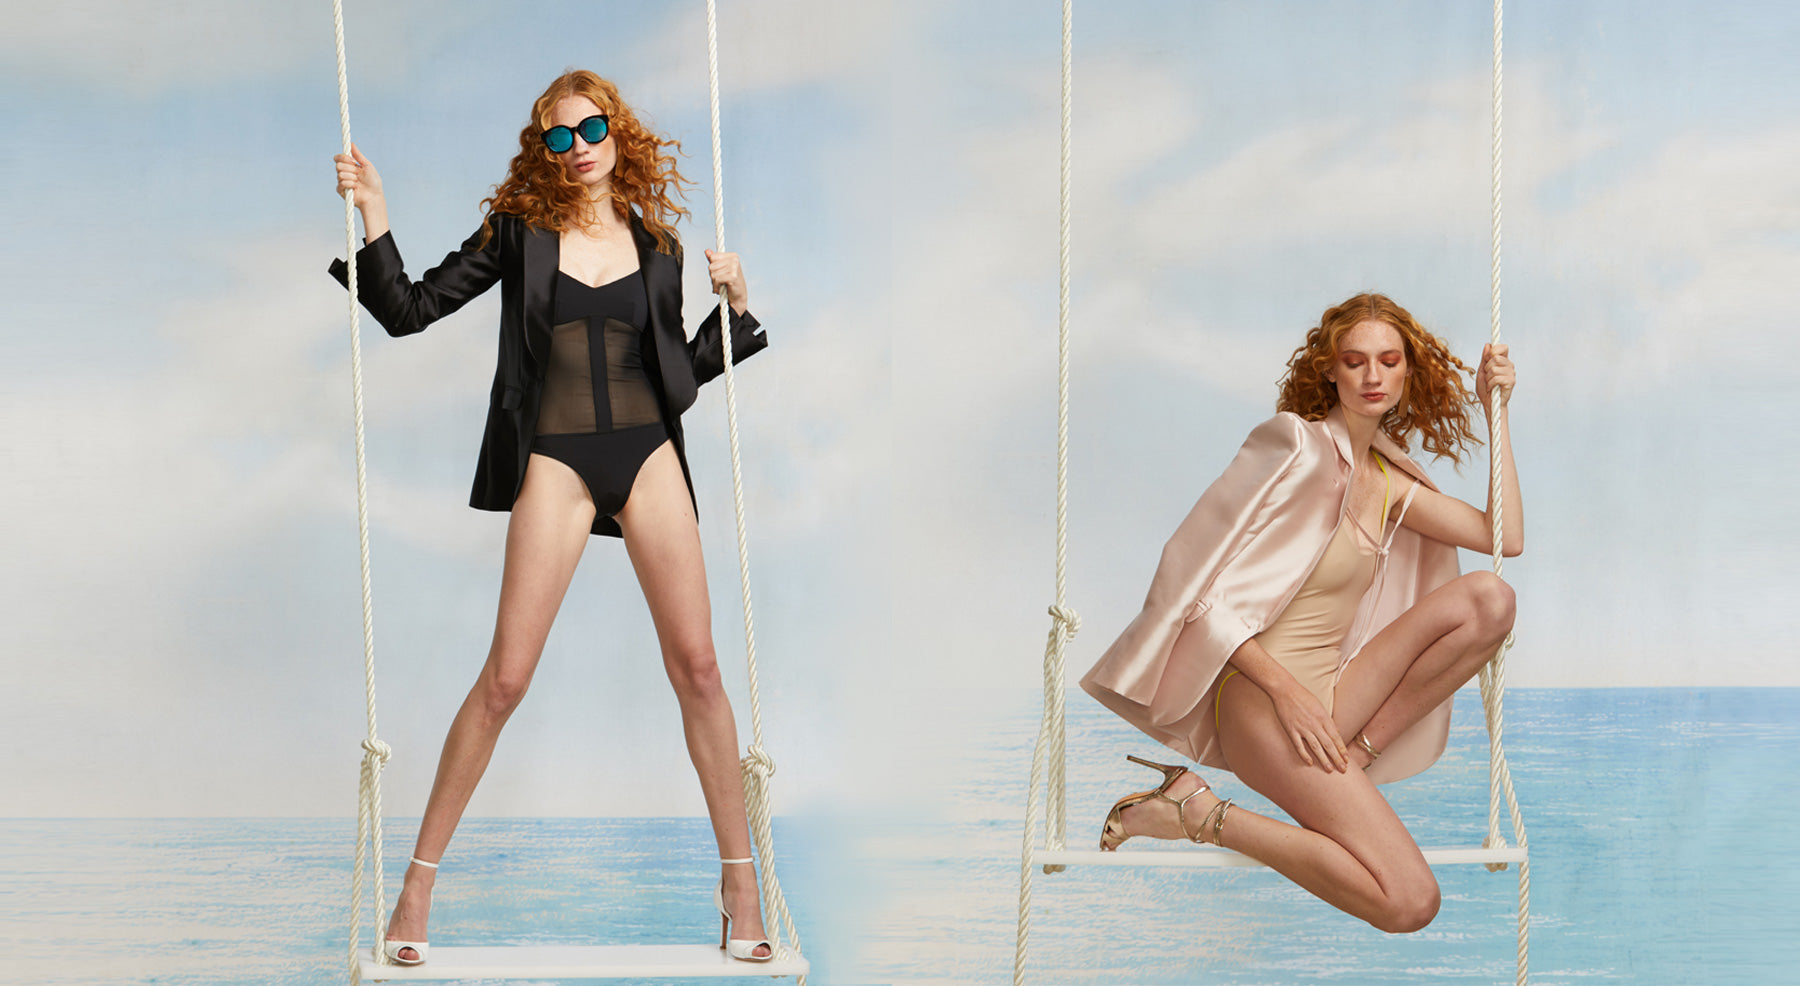 Models on swings wearing a black mesh one piece swimsuit and silk wool black smoking jacket and a beige surfsuit with light pink silk wool smoking jacket.